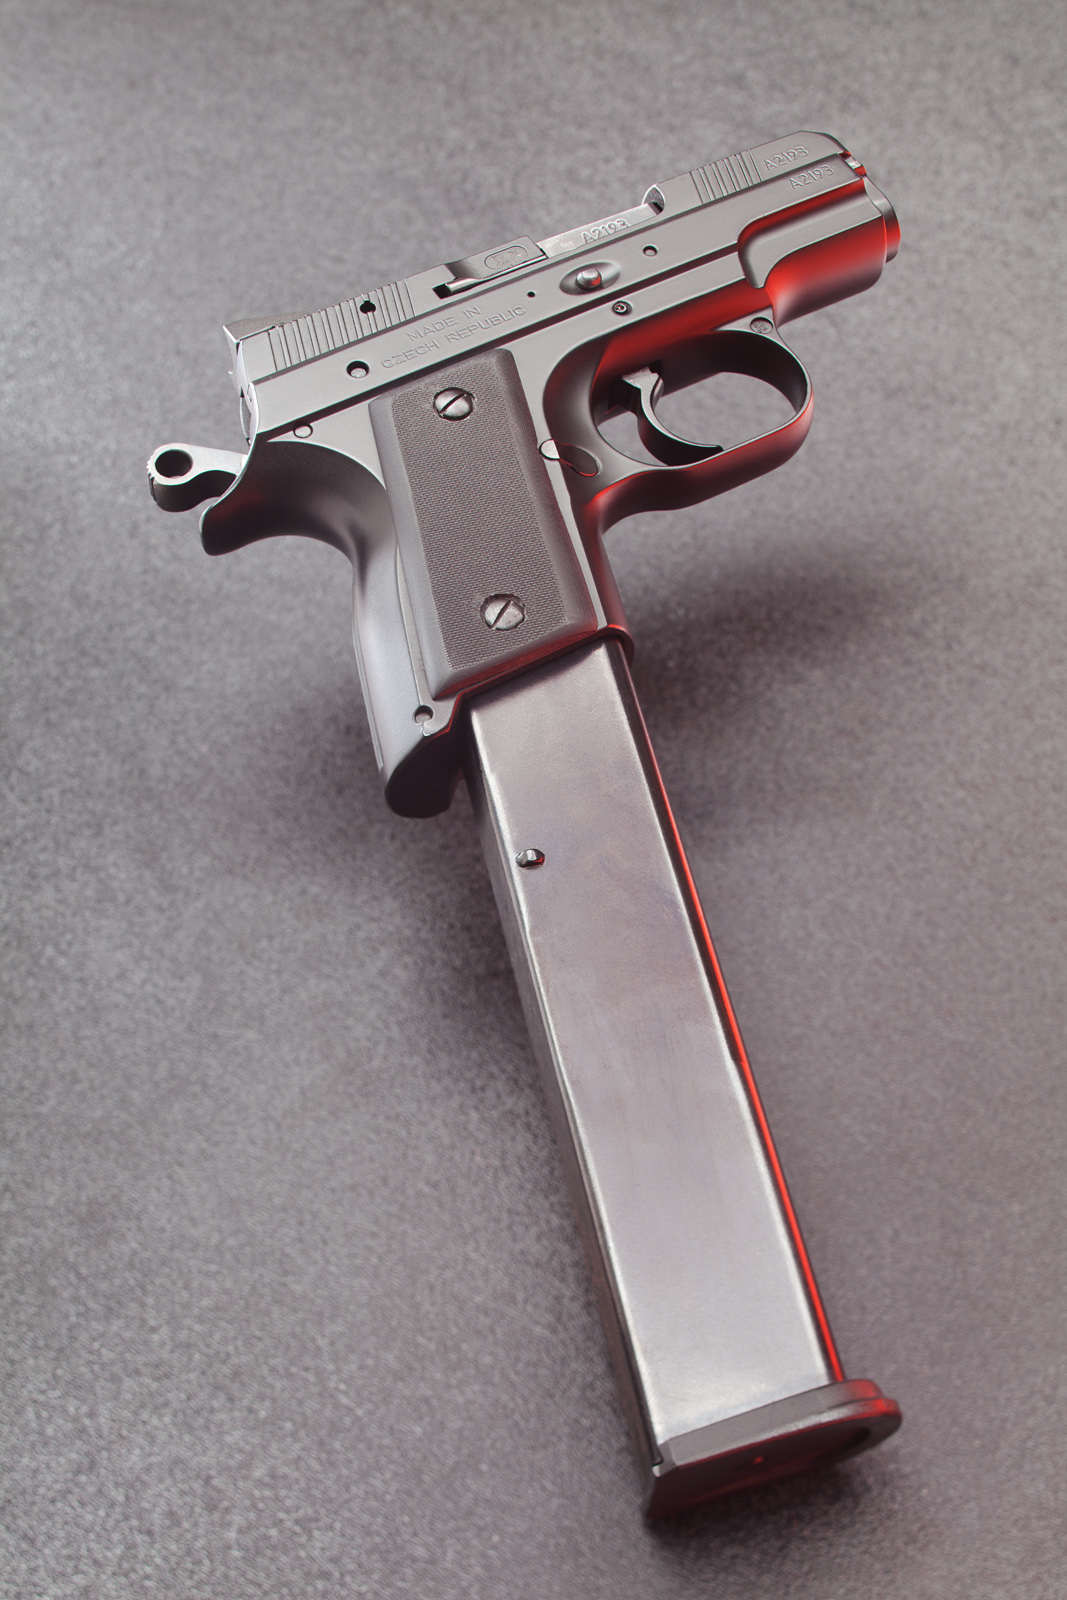 Walther ppq m2-rami_extended-mag_5600web.jpg